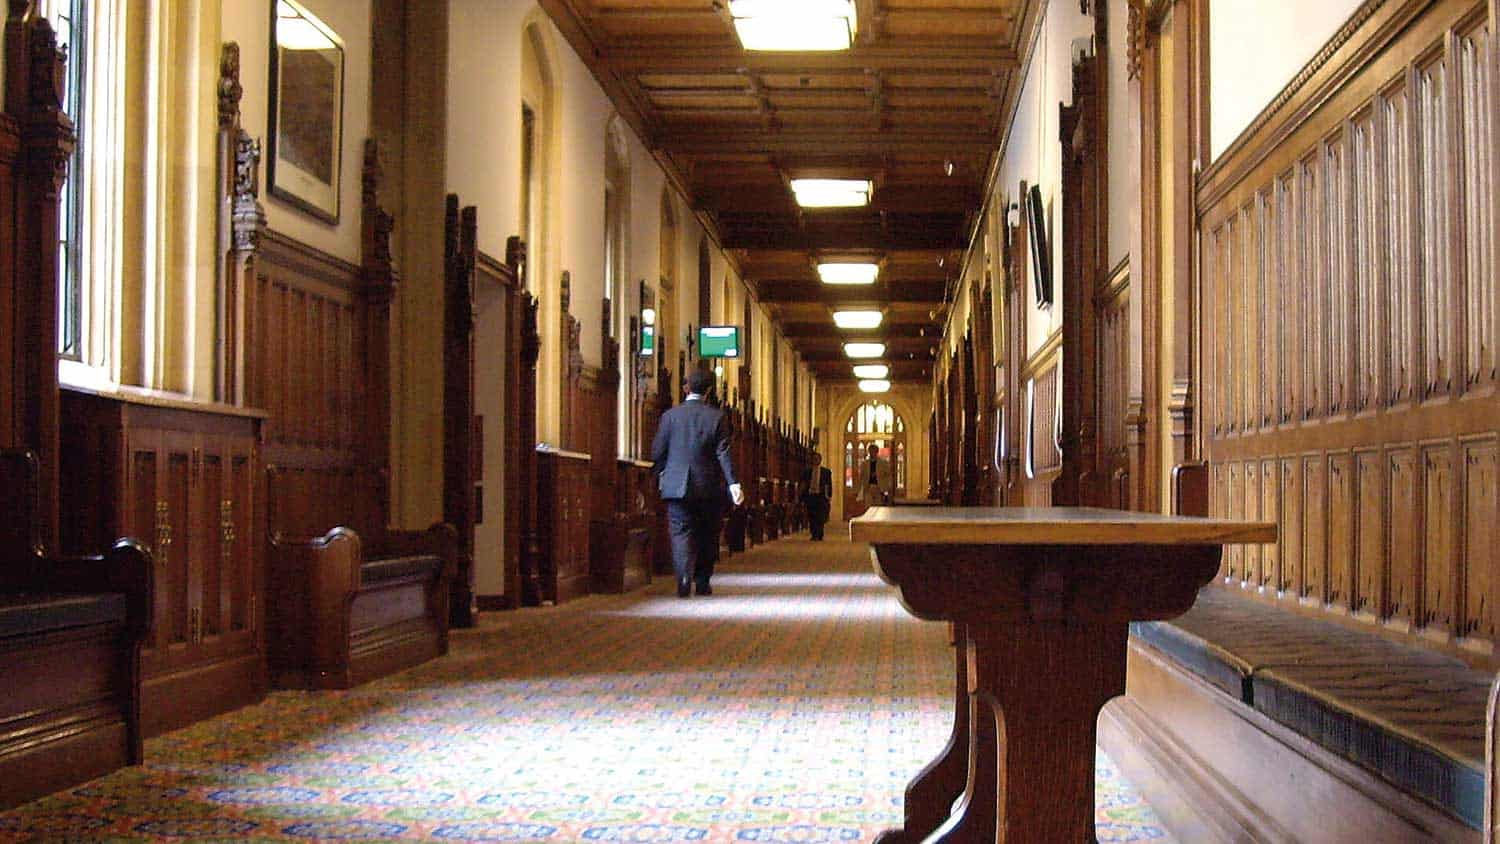 A view down one of parliament's long corridors, empty aside from a bench